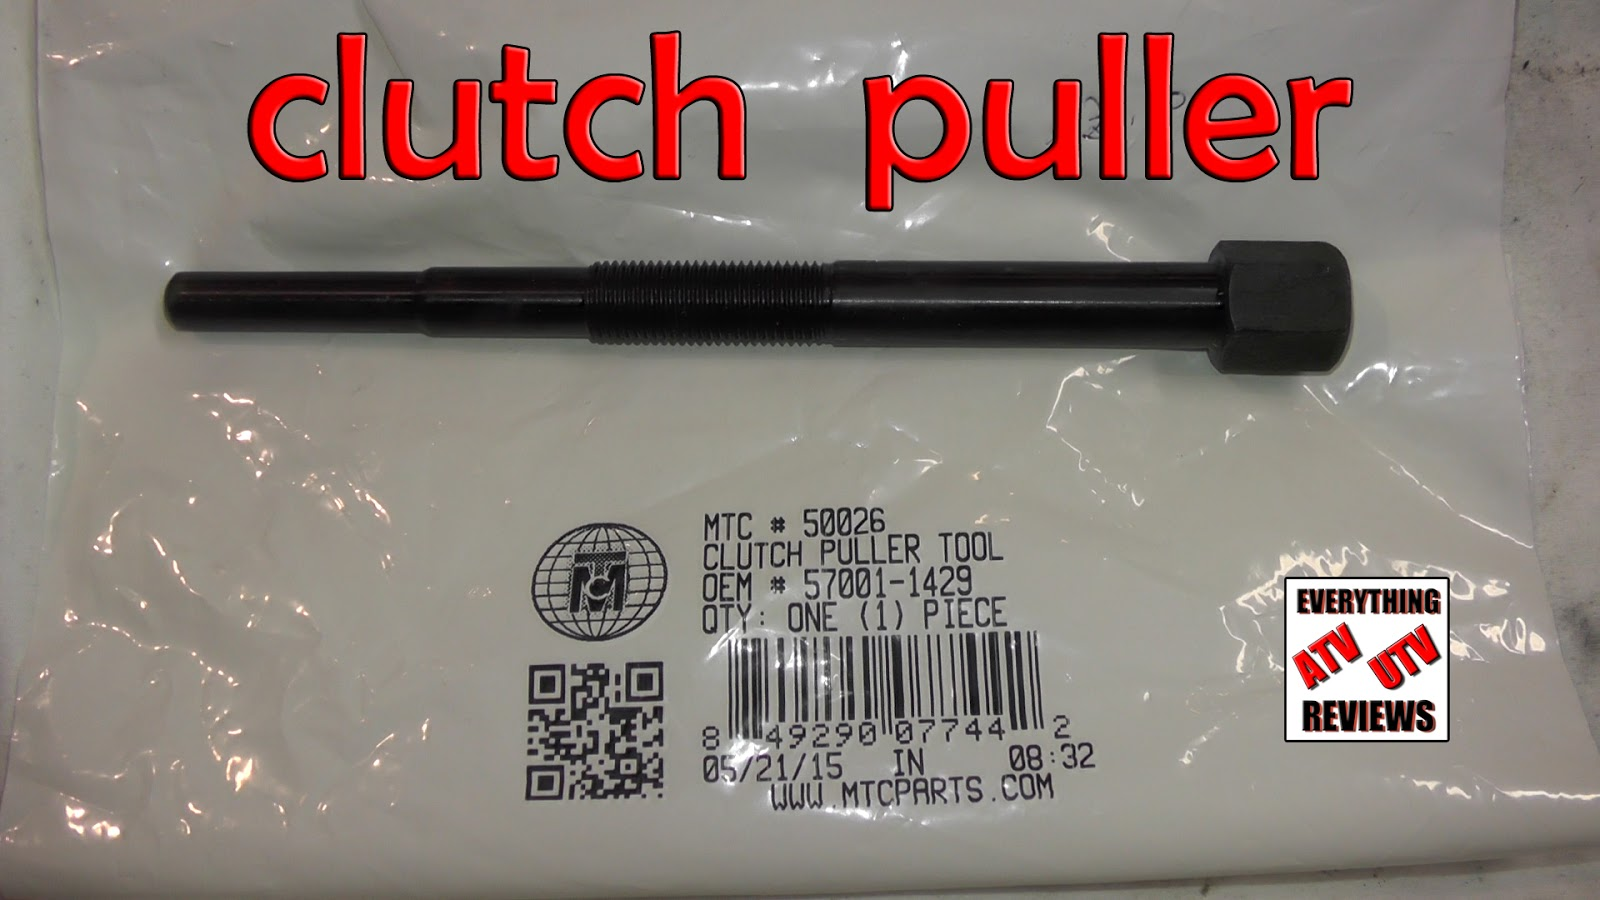 Brand New Clutch Puller Tool 57001-1429